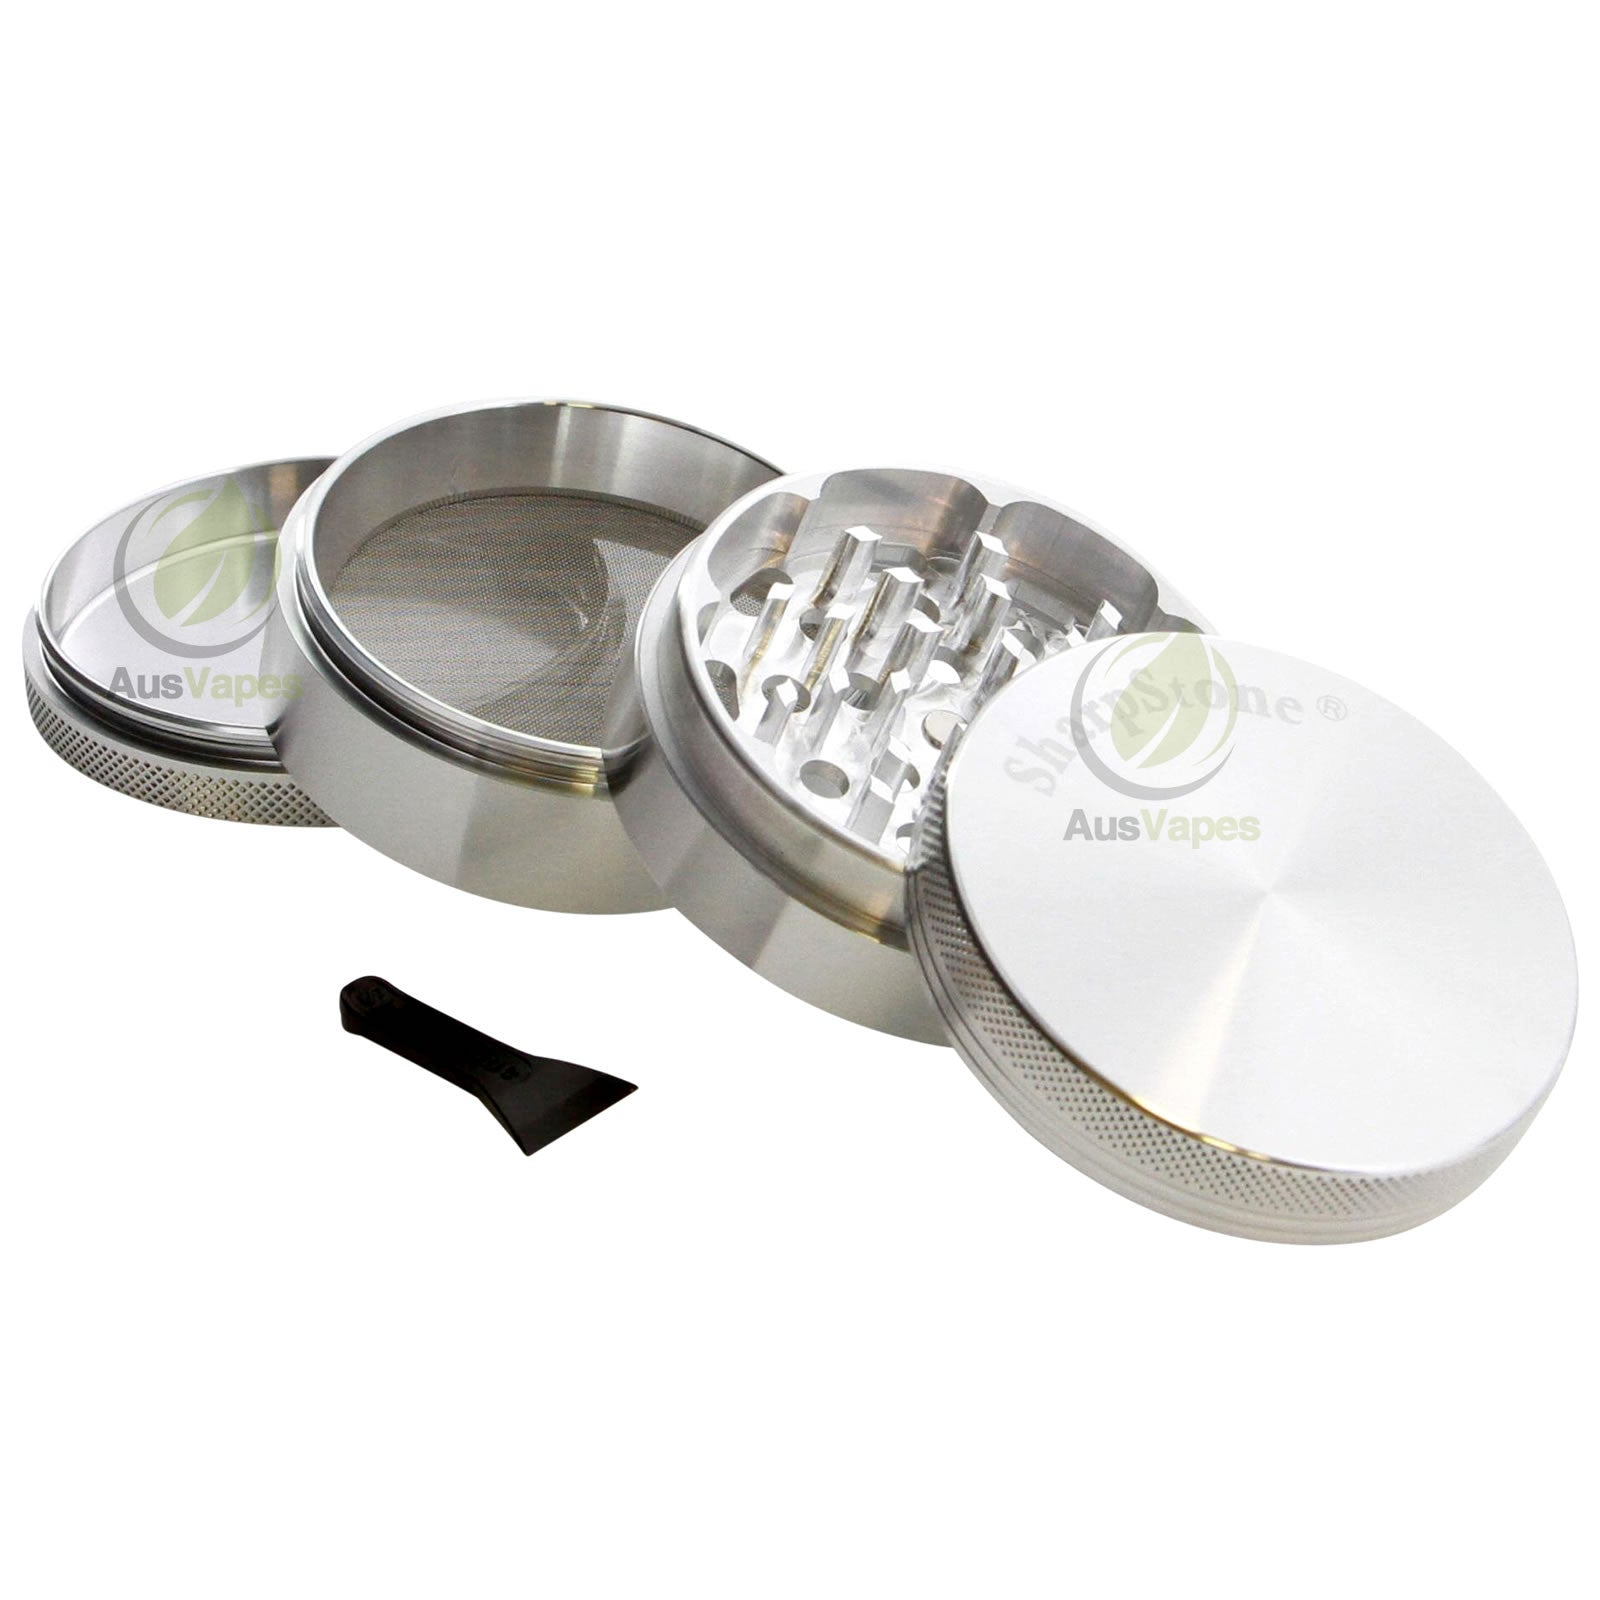 DISCONTINUED Sharpstone 64mm 4pc Solid Top Grinder